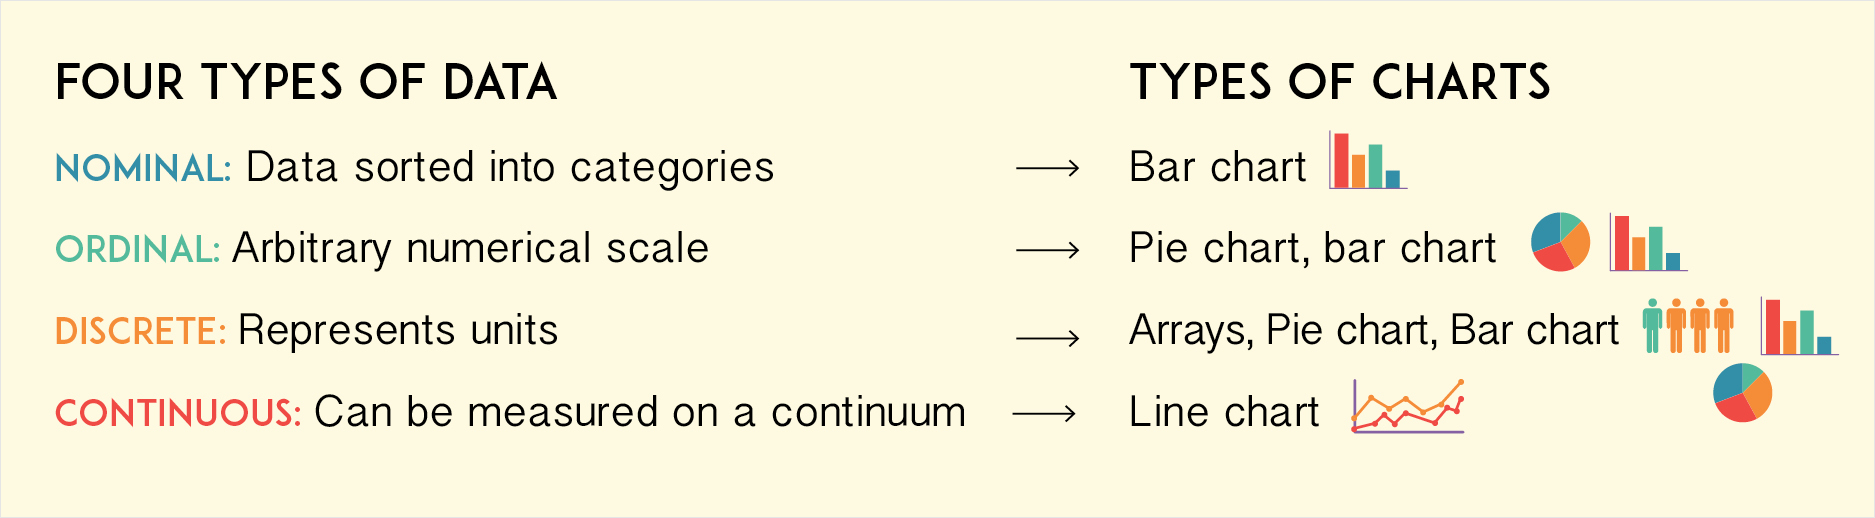 dos and donts chart making four types of data